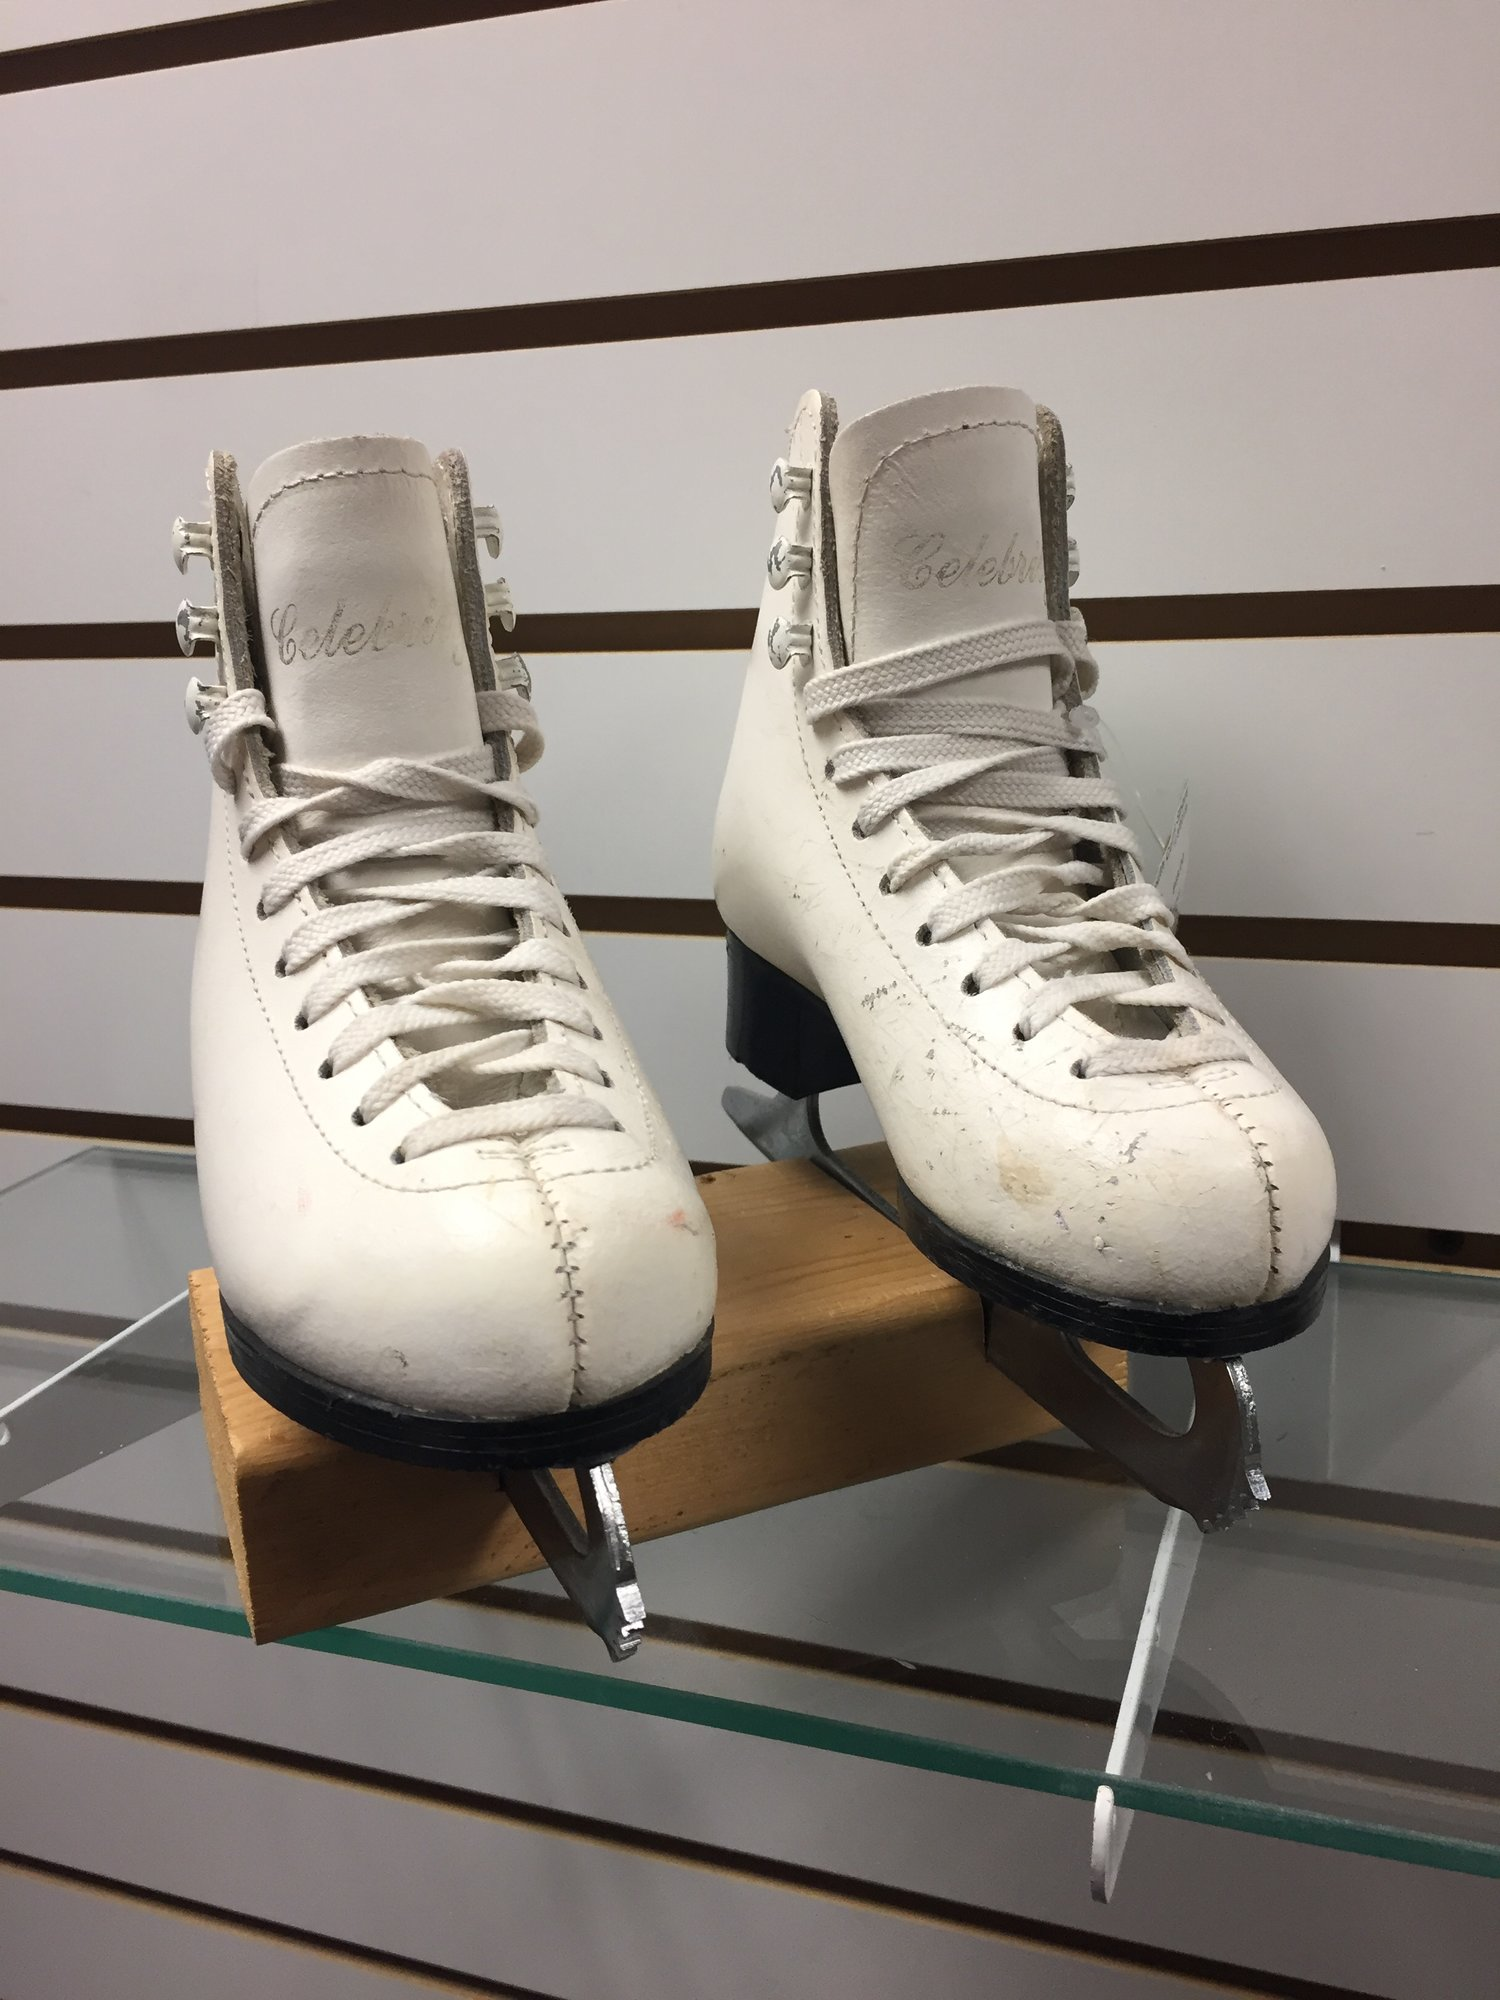 Celebrity Traditional figure skates, MK blades, White, Size: Y9